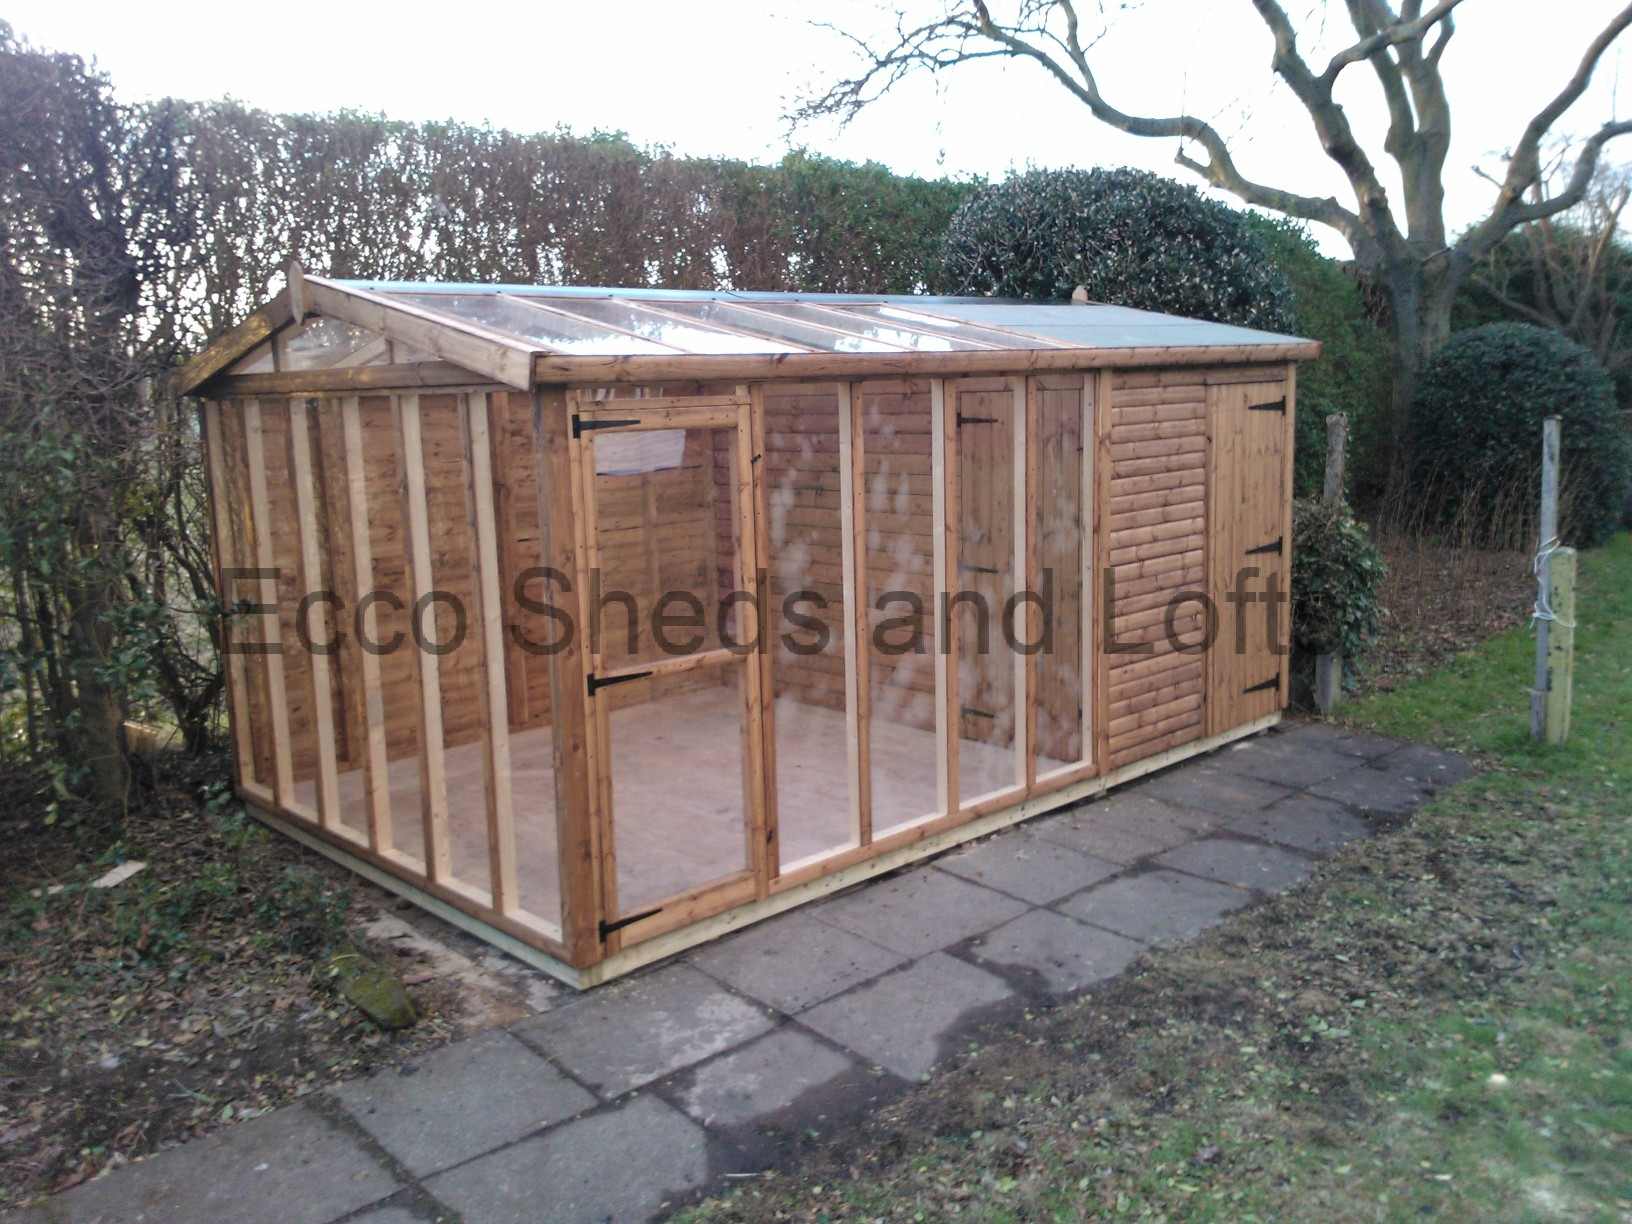 sheds tiver wooden storage ton potting accessible our devon products oakford help shed heroes the large for workshop